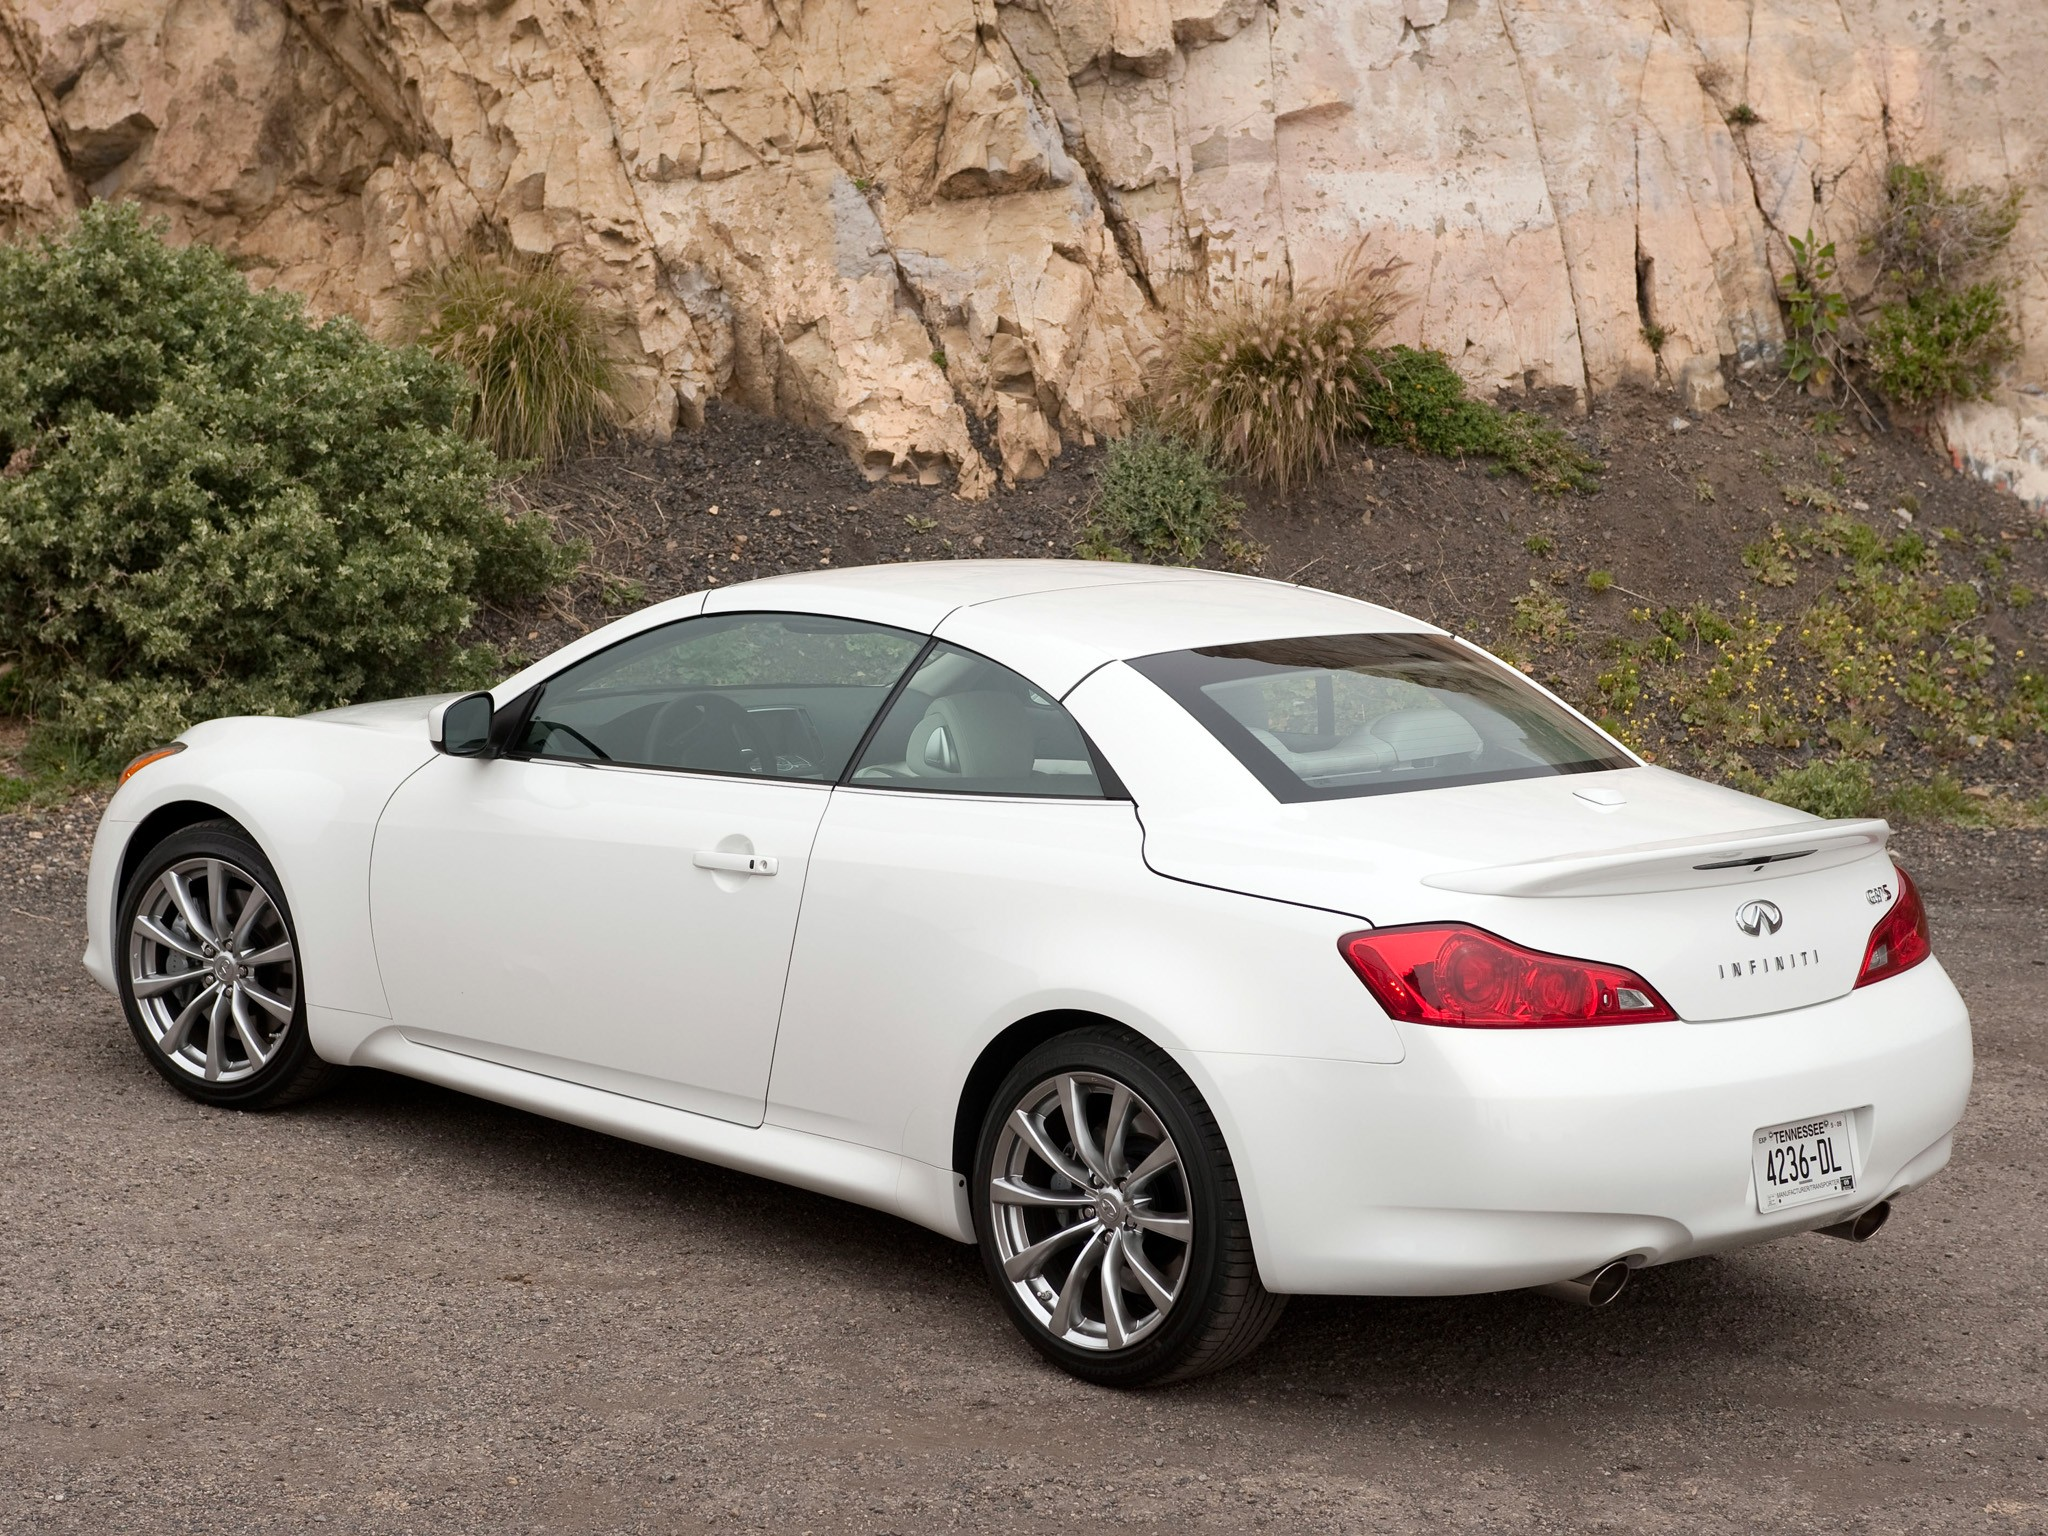 infiniti g37 convertible by - photo #14